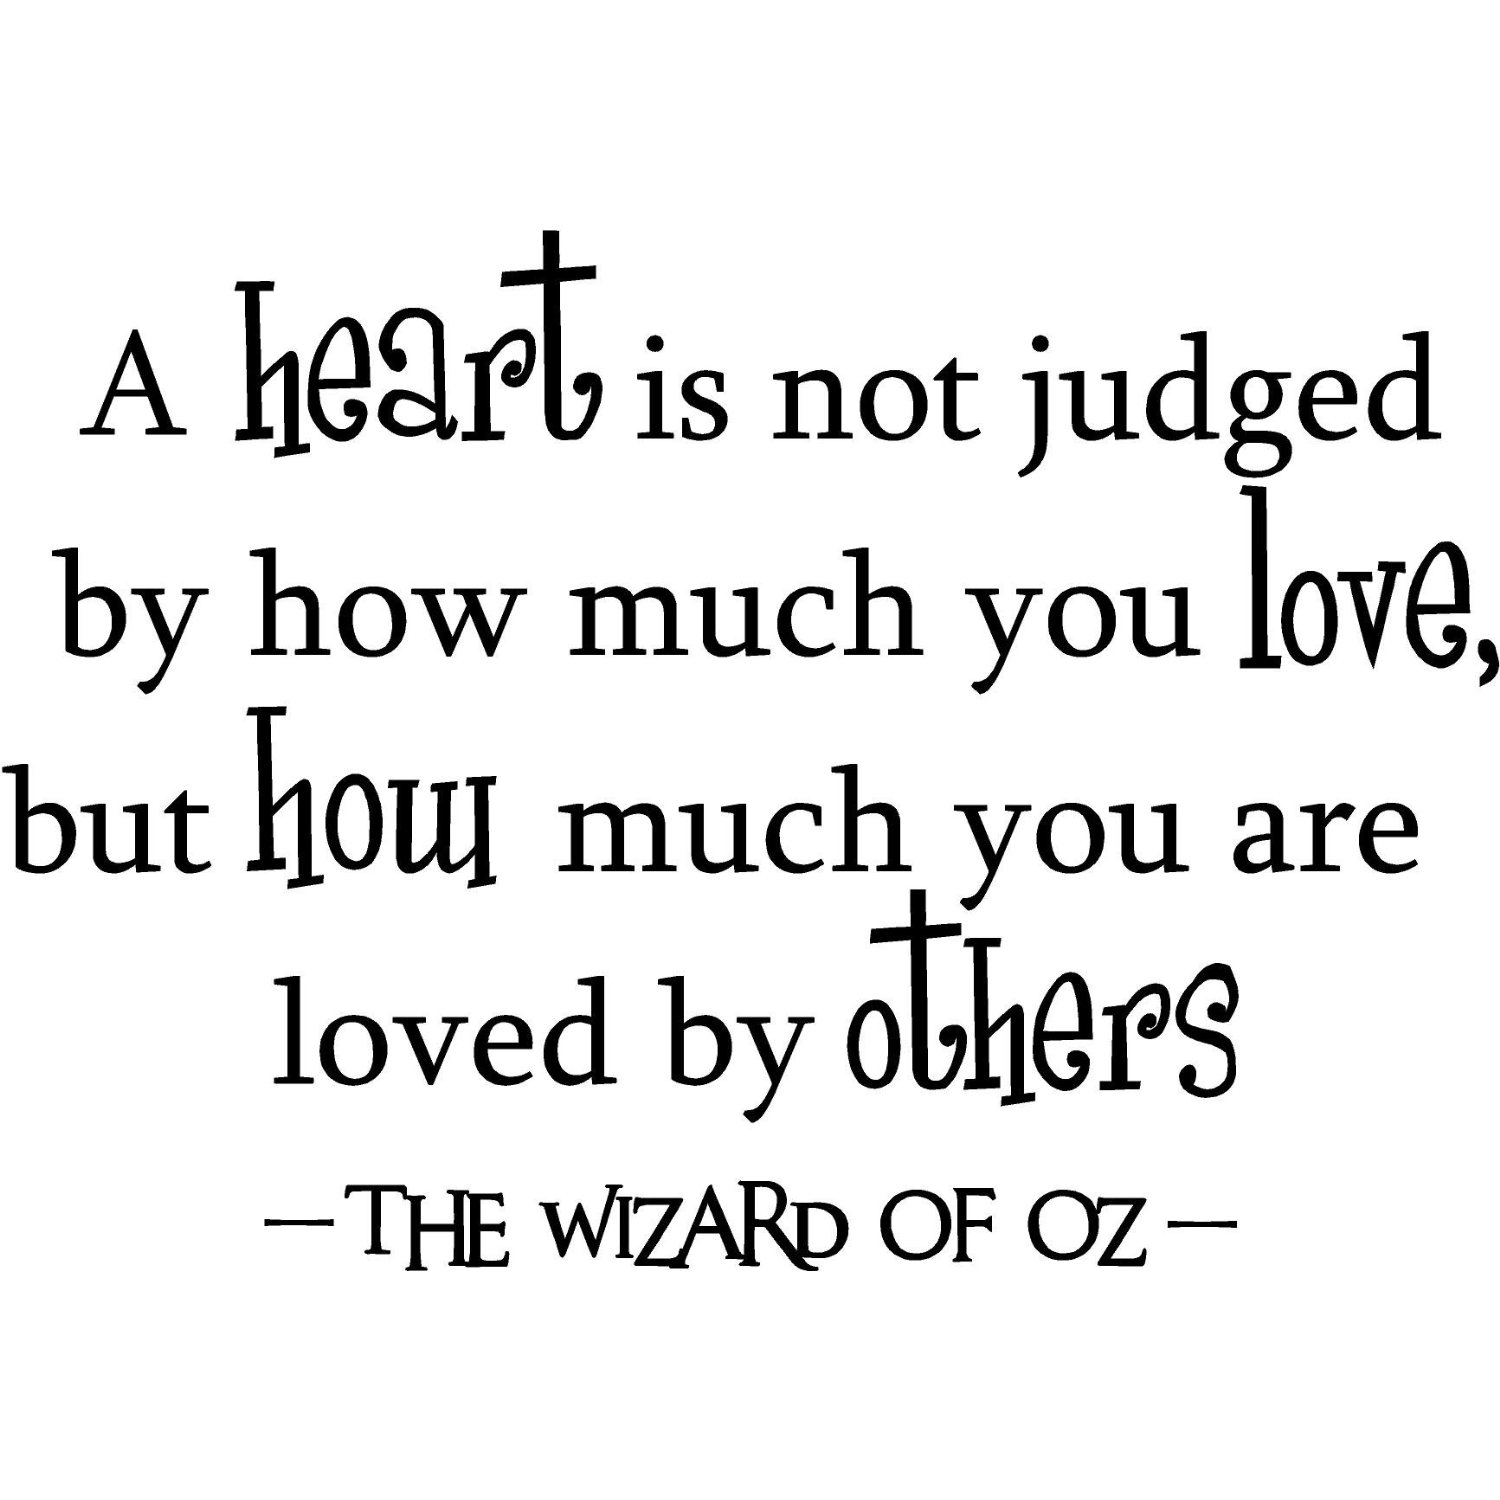 Wizard Of Oz Friendship Quotes Quotesgram. Encouraging Cheer Quotes. Country Quotes Kenny Chesney. Cute Quotes About Crushes. Disney Quotes In Frames. Single Quotes In C. Tumblr Quotes Makeup. Cute Quotes Small. Nature Quotes Ppt